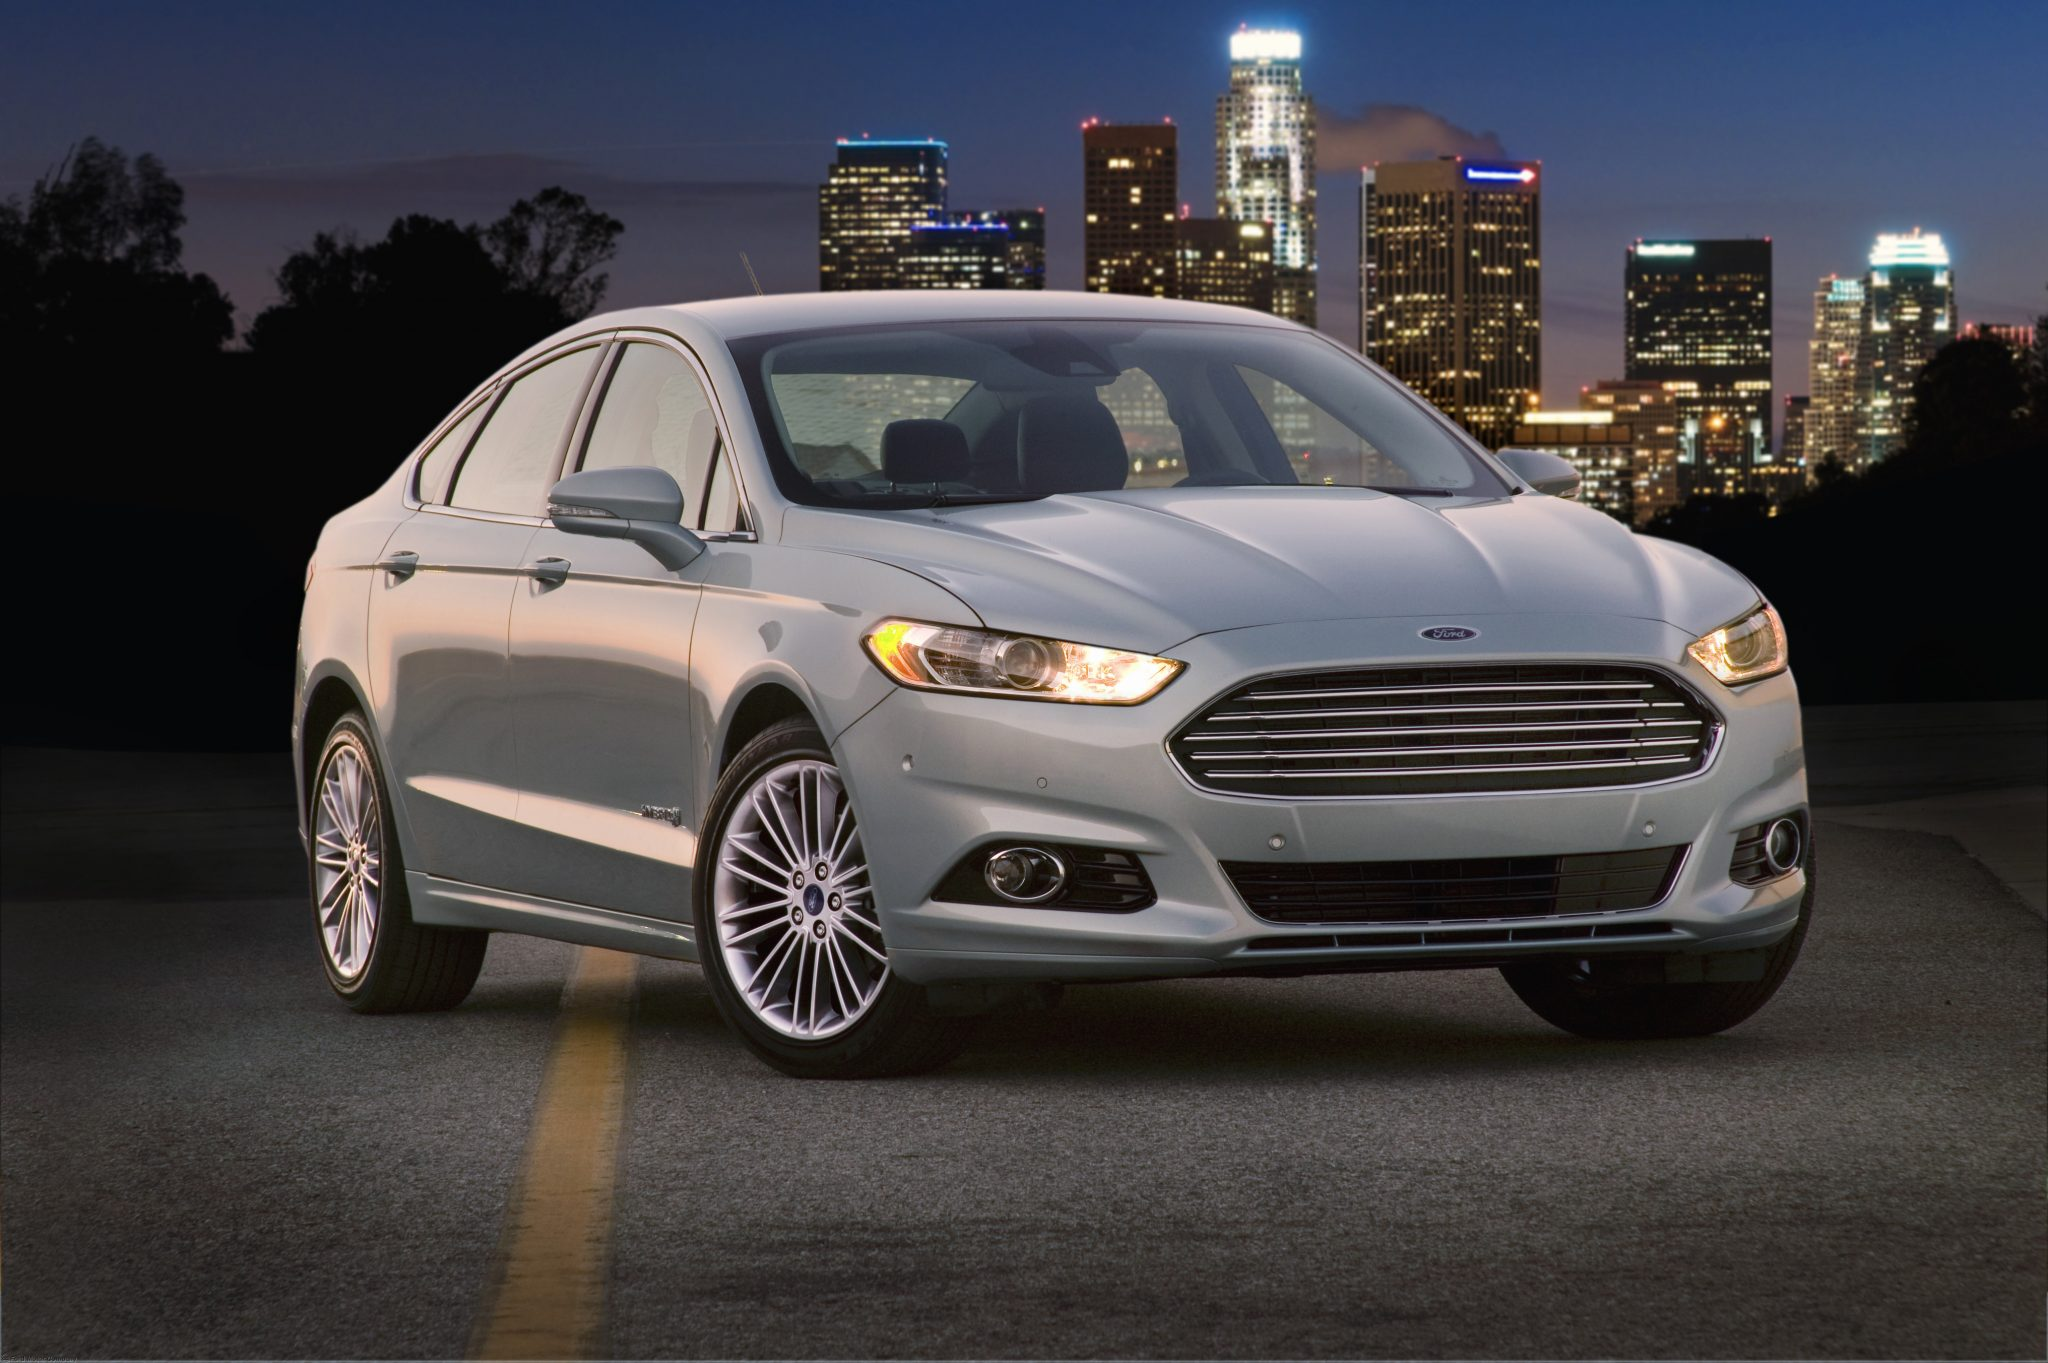 Ford Fusion Hybrid History